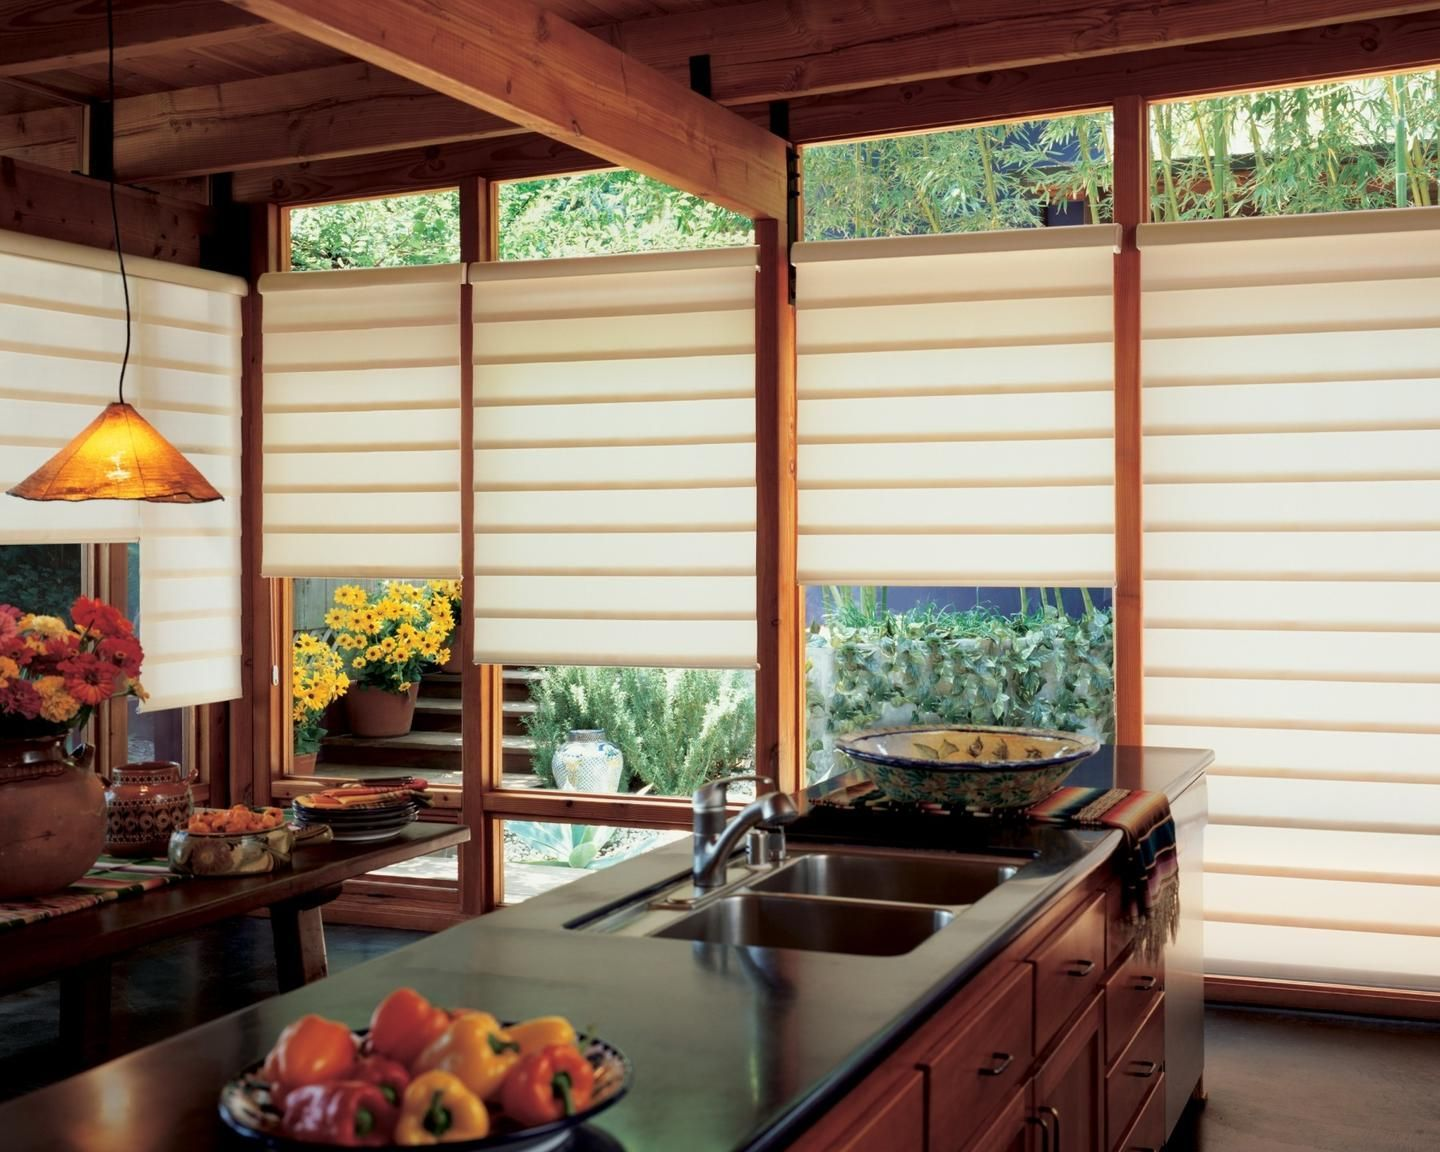 Image Result For Mid Century Modern Window Treatments Kitchen Design Styles Modern Window Treatments Kitchen Window Treatments